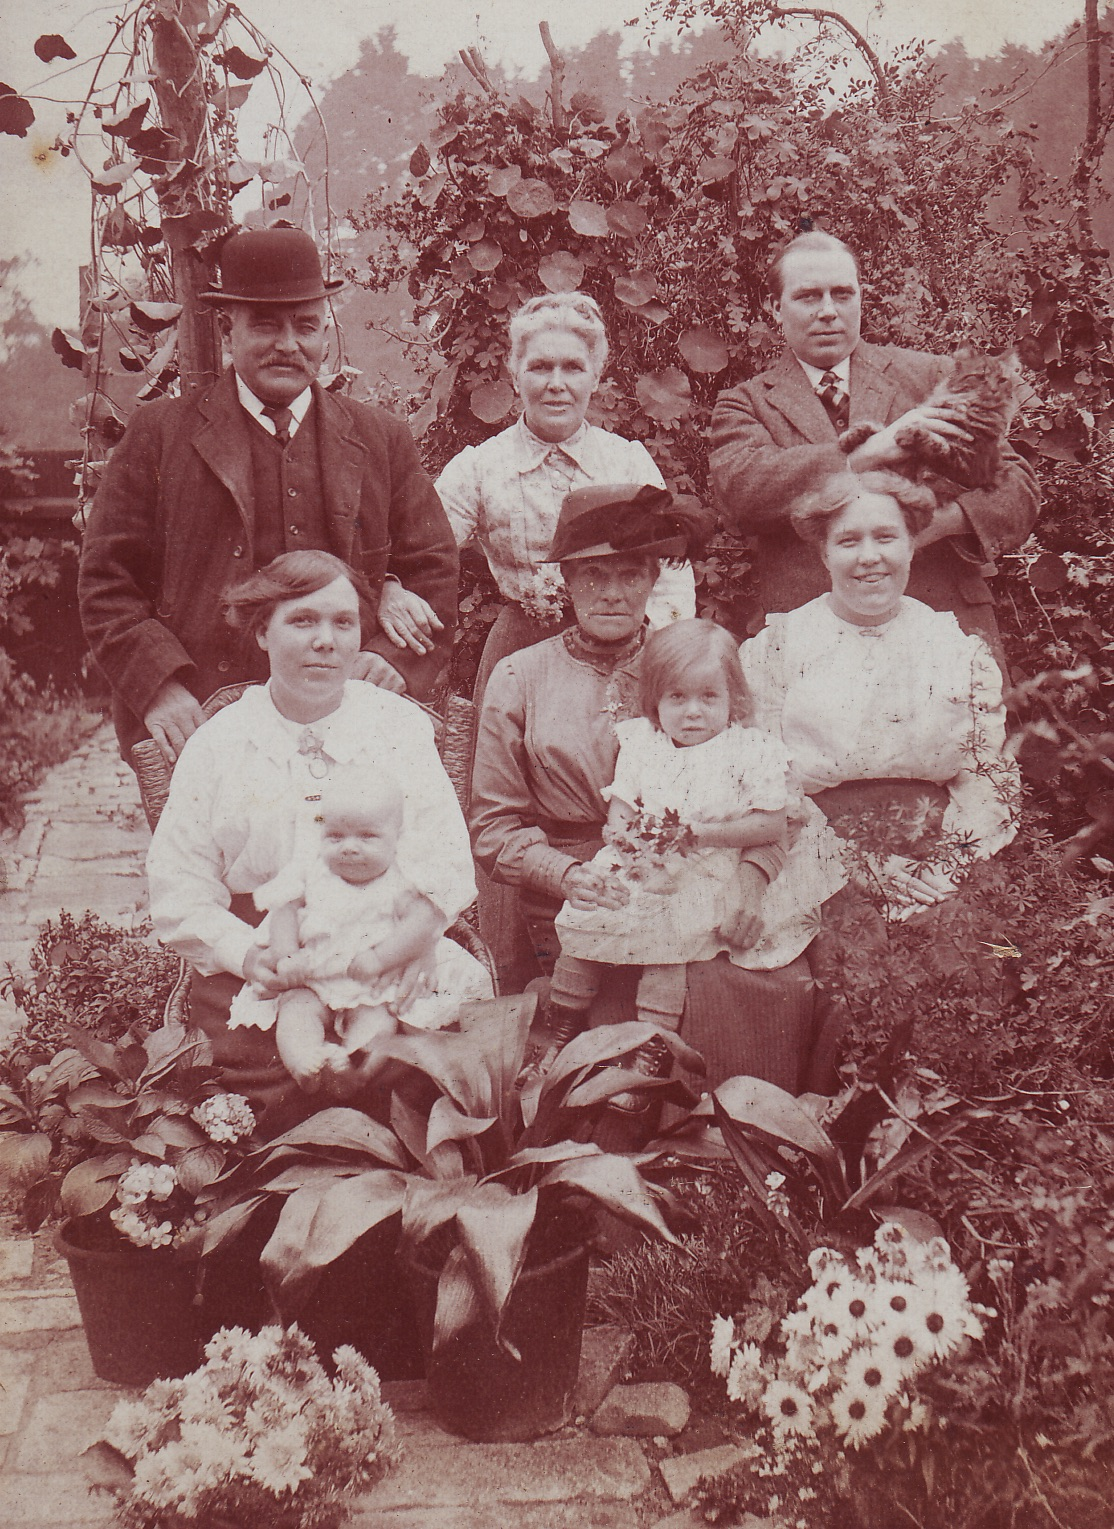 Family photograph c.1915 - Top left, Father Edward Henry Willis, Aunt Honour & Half-brother Alfred Cook Green. Bottom left, sister Harriet Emma Eliza, mother Emma & sister Emily Lottie. Baby nephew William Sydney & niece Olive Emma.